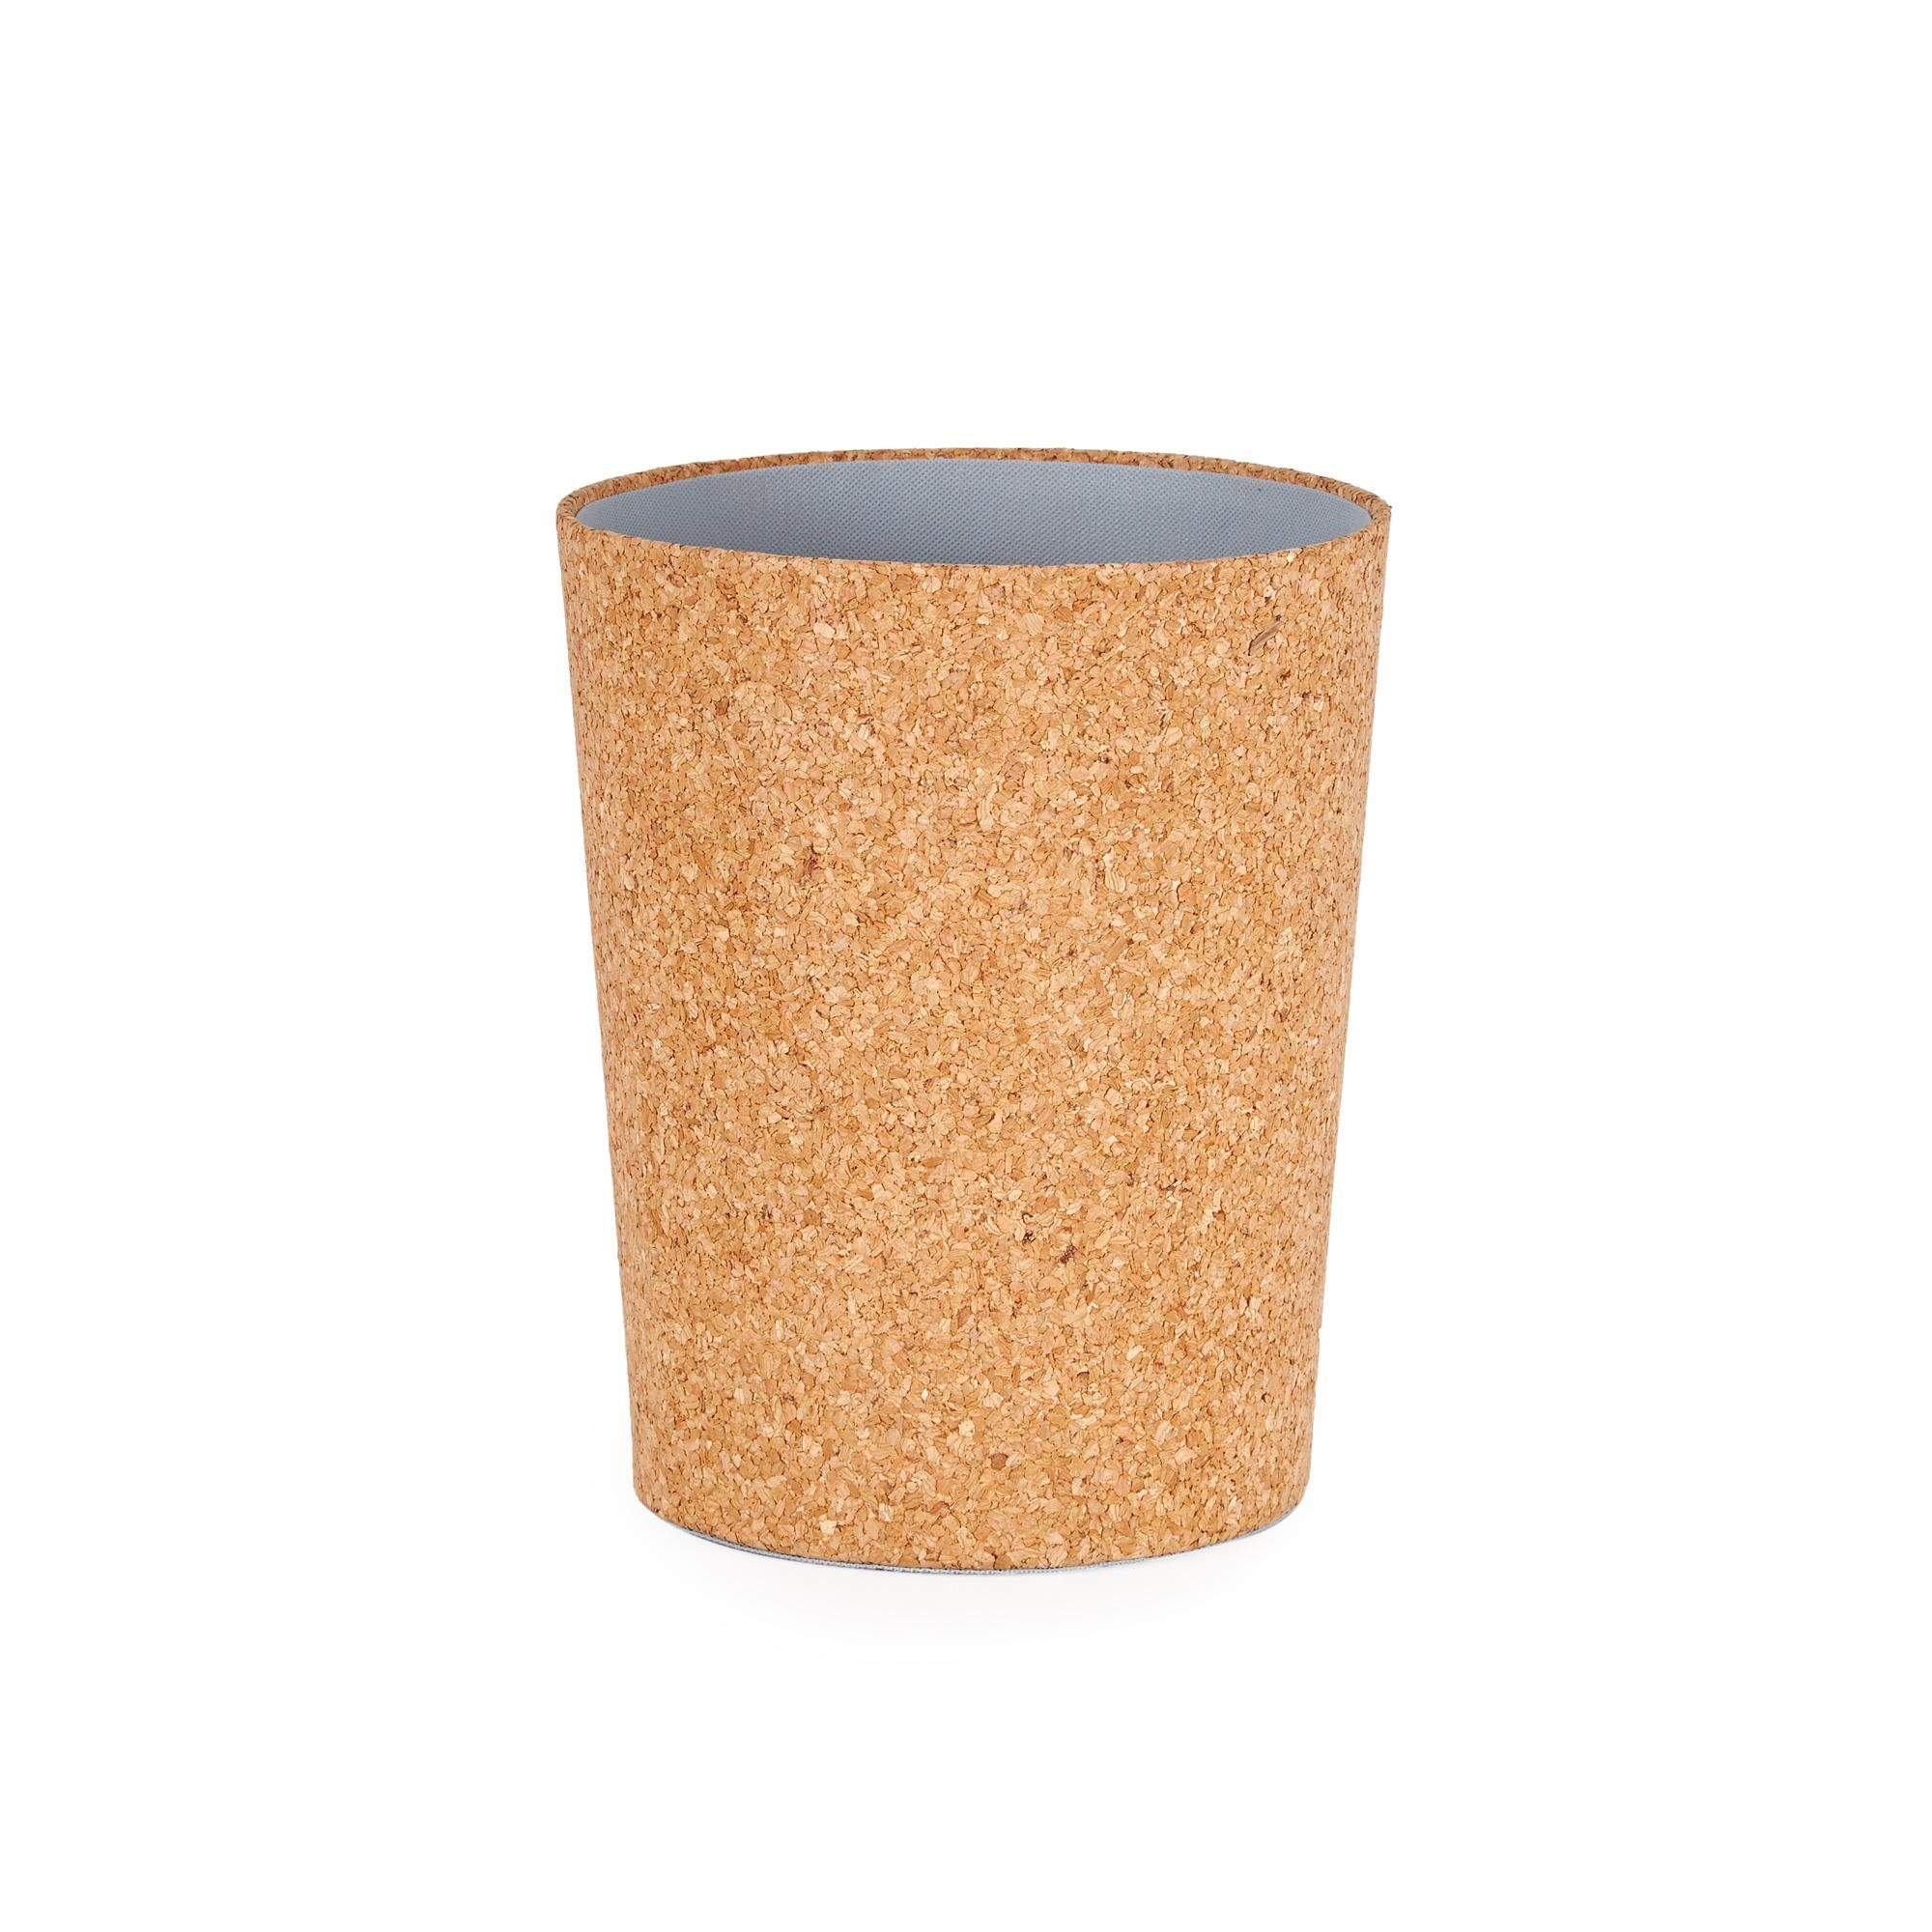 Designed from rustic cork materials, this cork waste paper bin boasts a beautiful rustic appearance and is suitable for use within any room of your home or office for ease of recycling waste paper.